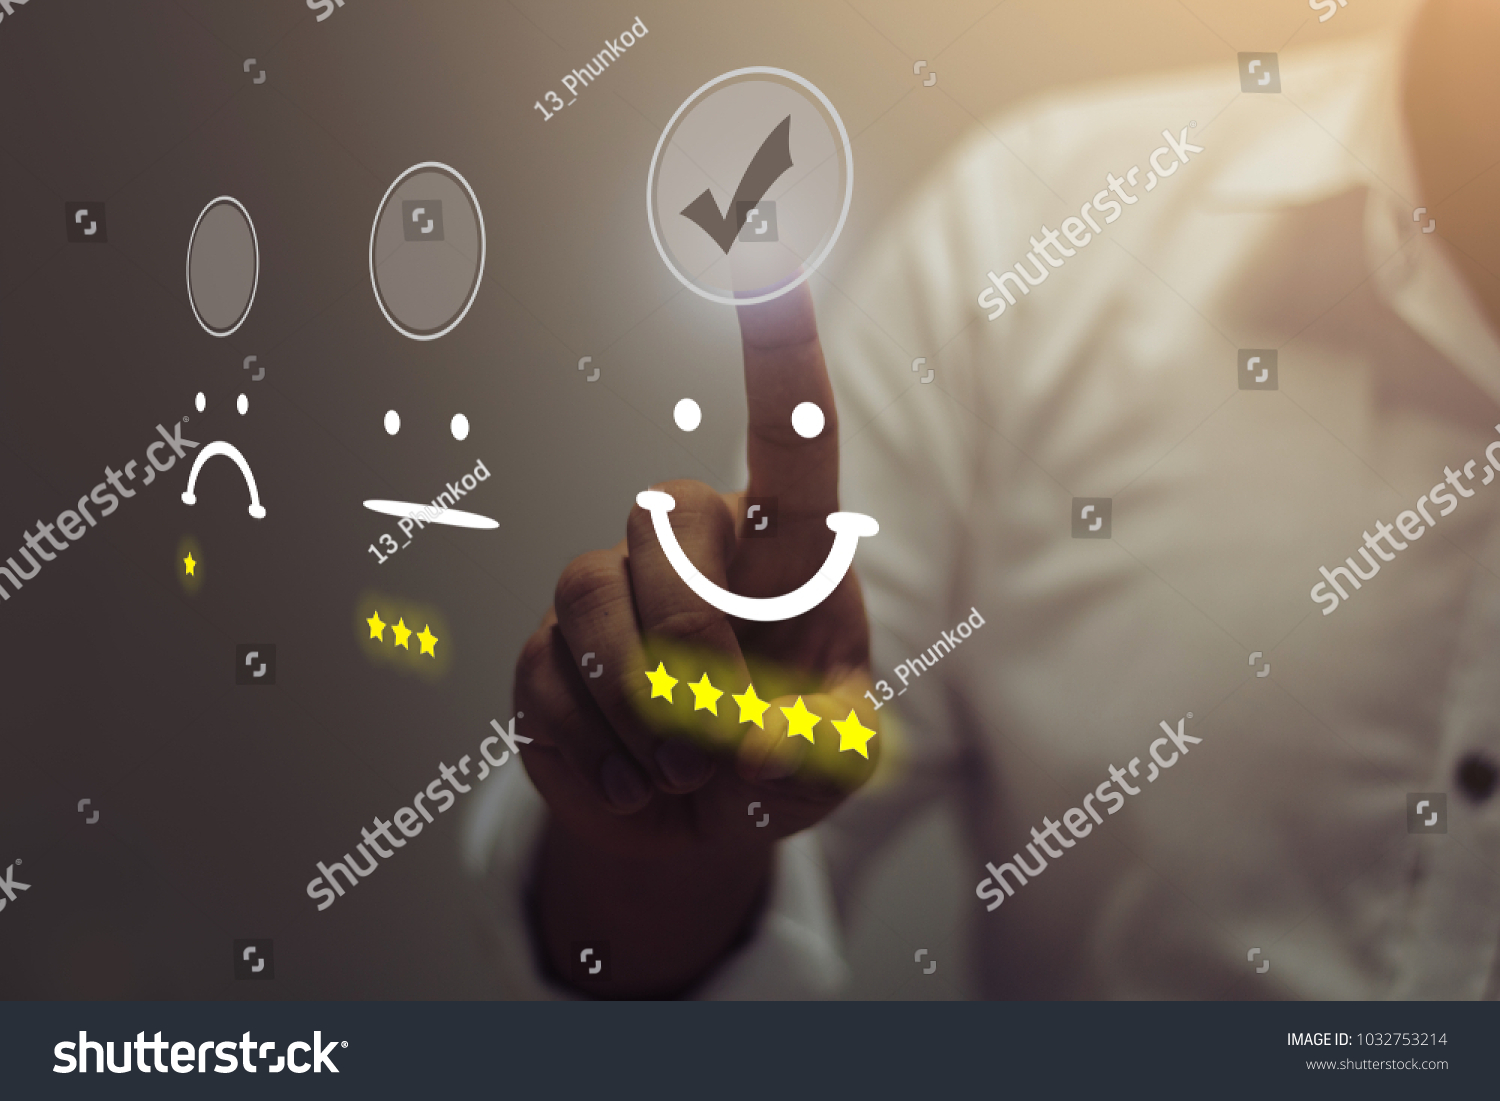 Businessman pressing smiley face emoticon on virtual touch screen. Customer service evaluation concept. #1032753214